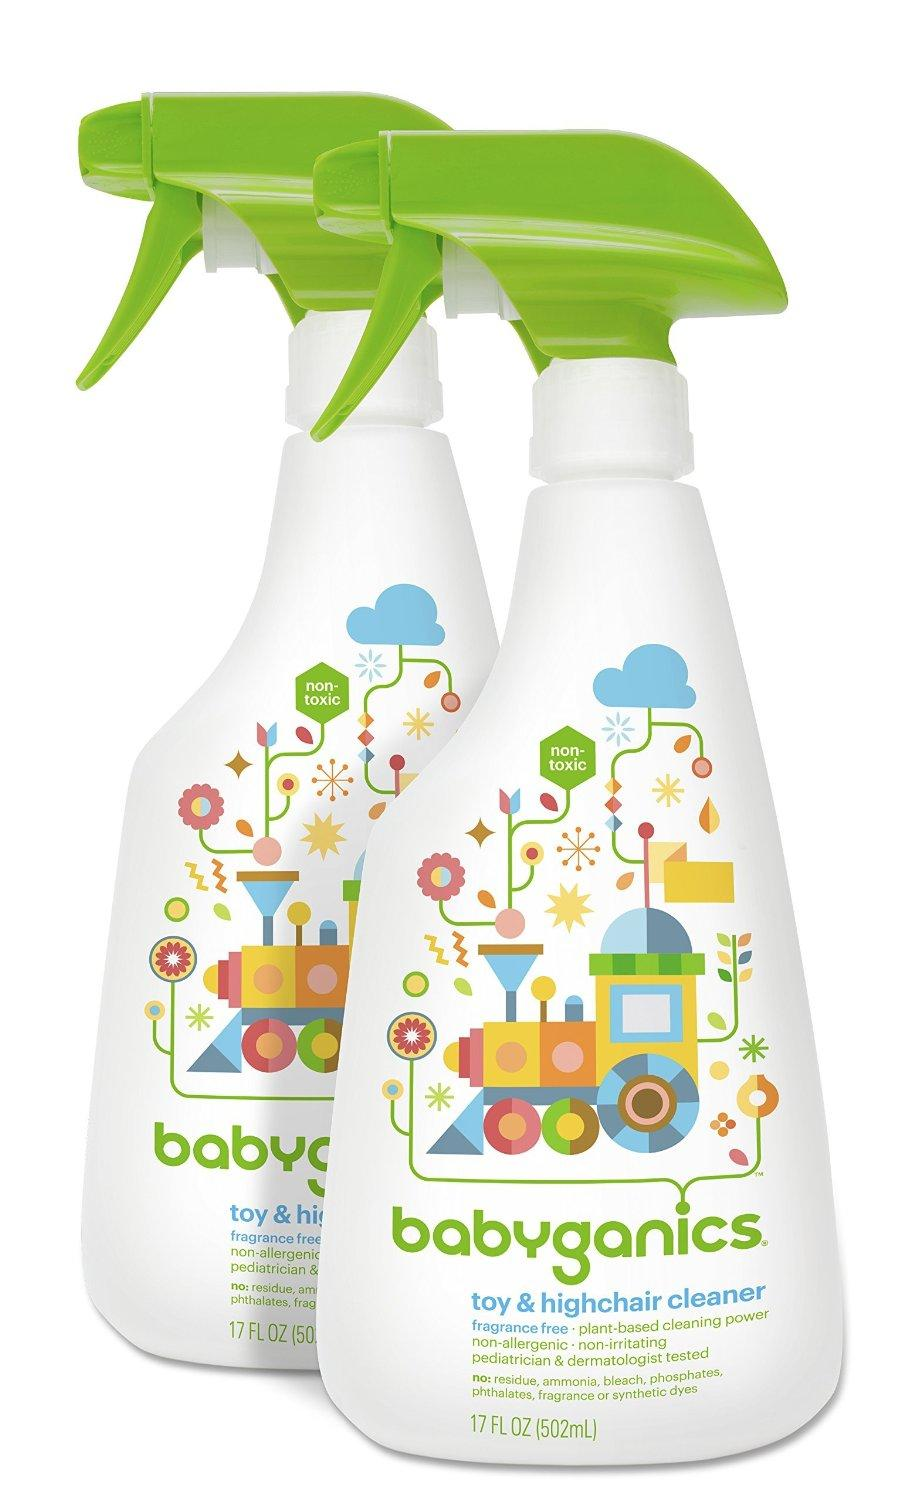 Babyganics Toy & Highchair Cleaner, 17-Fluid Ounce Bottles (Pack of 2)